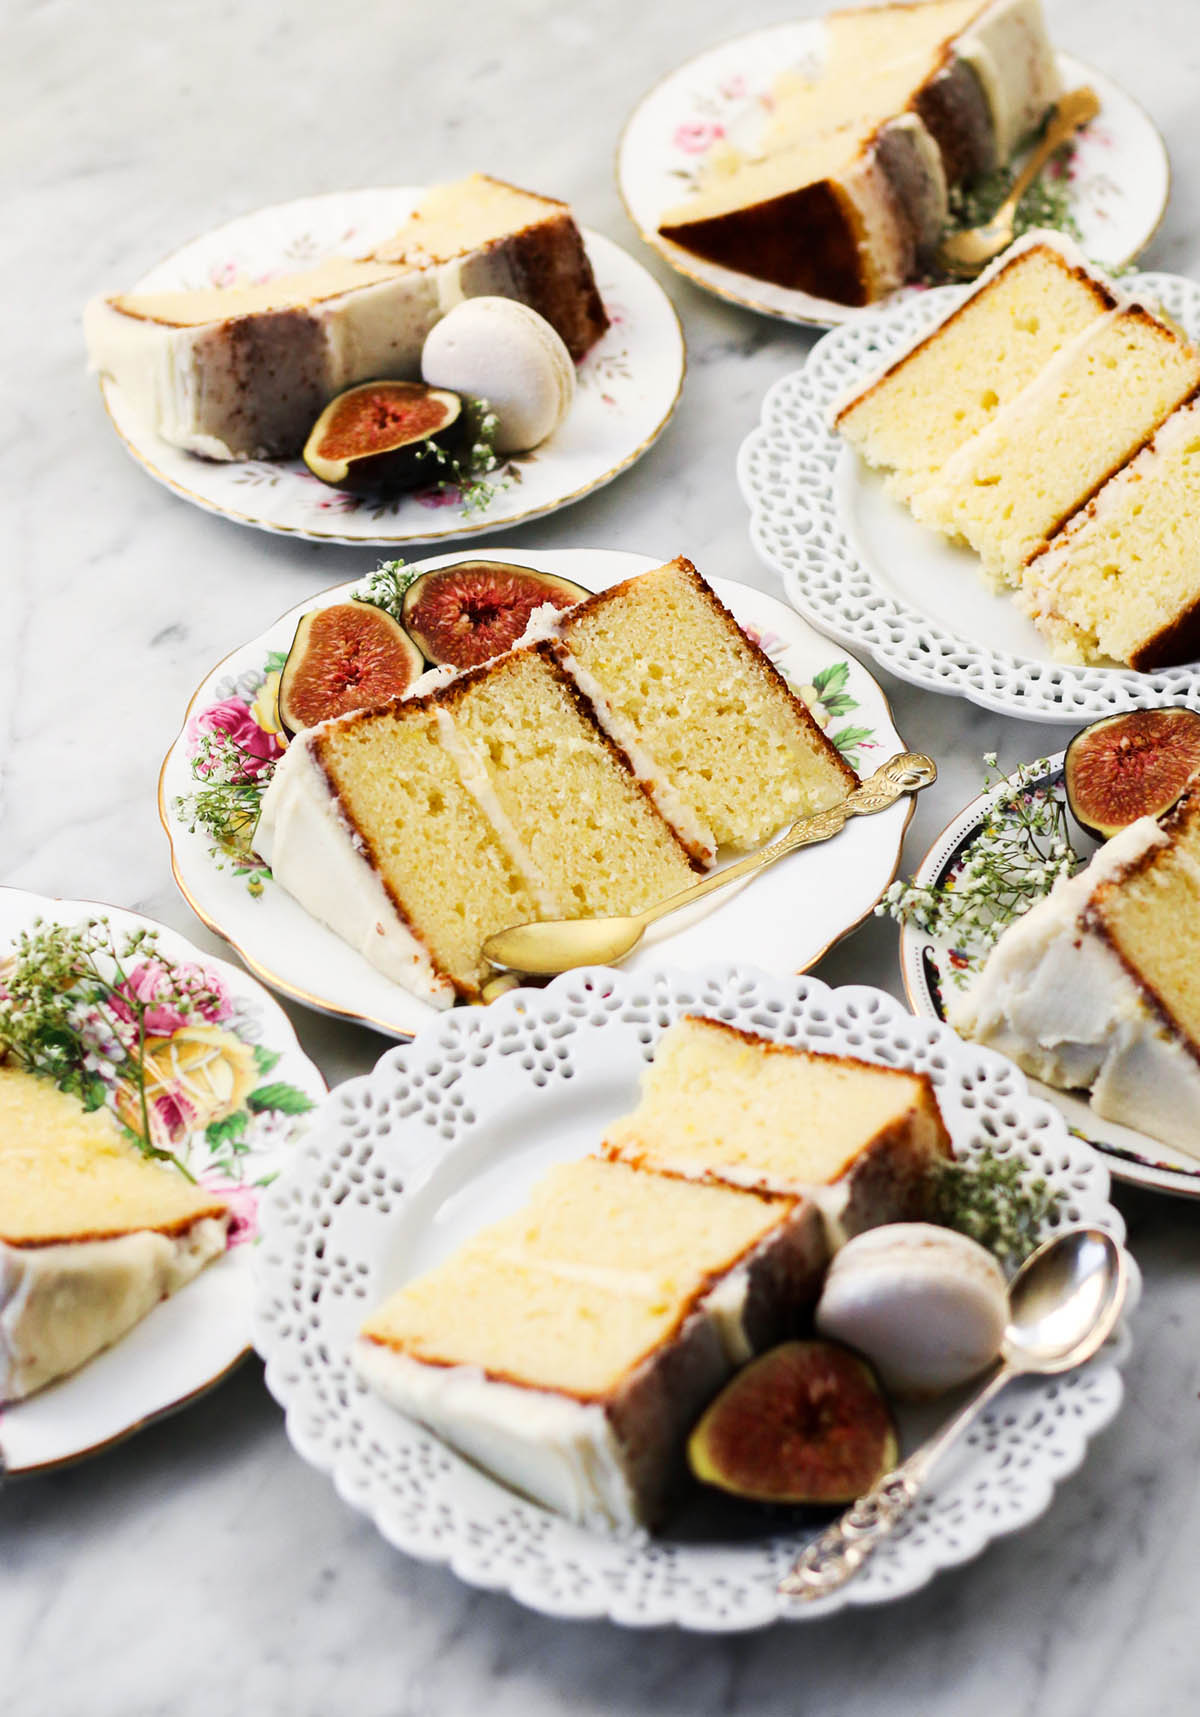 Several plates with floral motifs holding slices of cake with icing and figs.